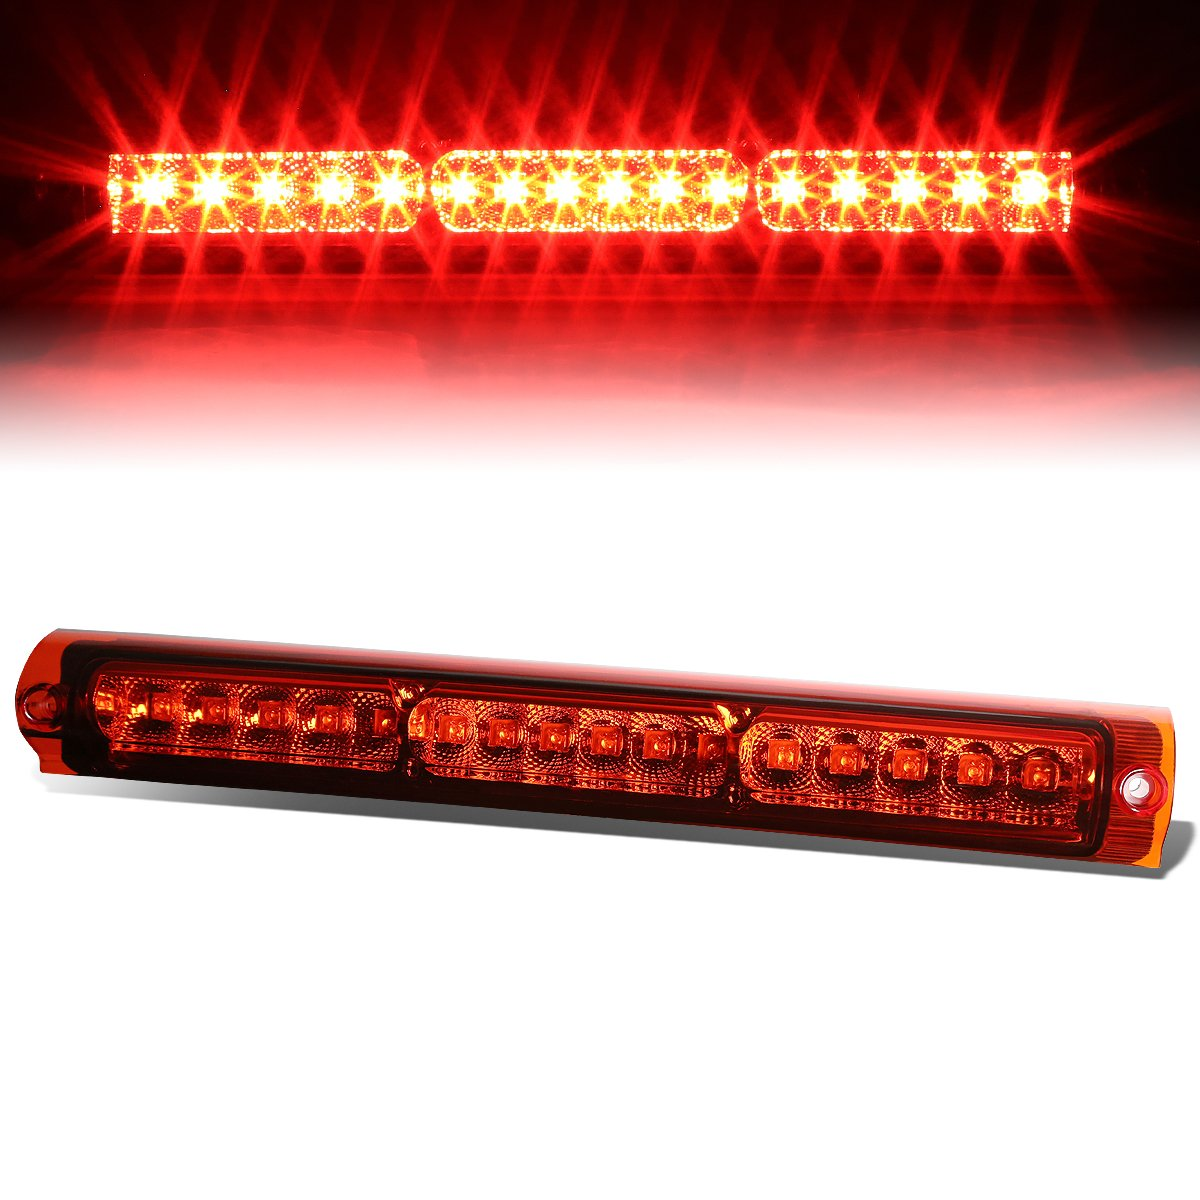 For Ford F150 / F250 / Excursion High Mount Centre High Mount LED 3rd Brake Light (Red Lens) Auto Dynasty